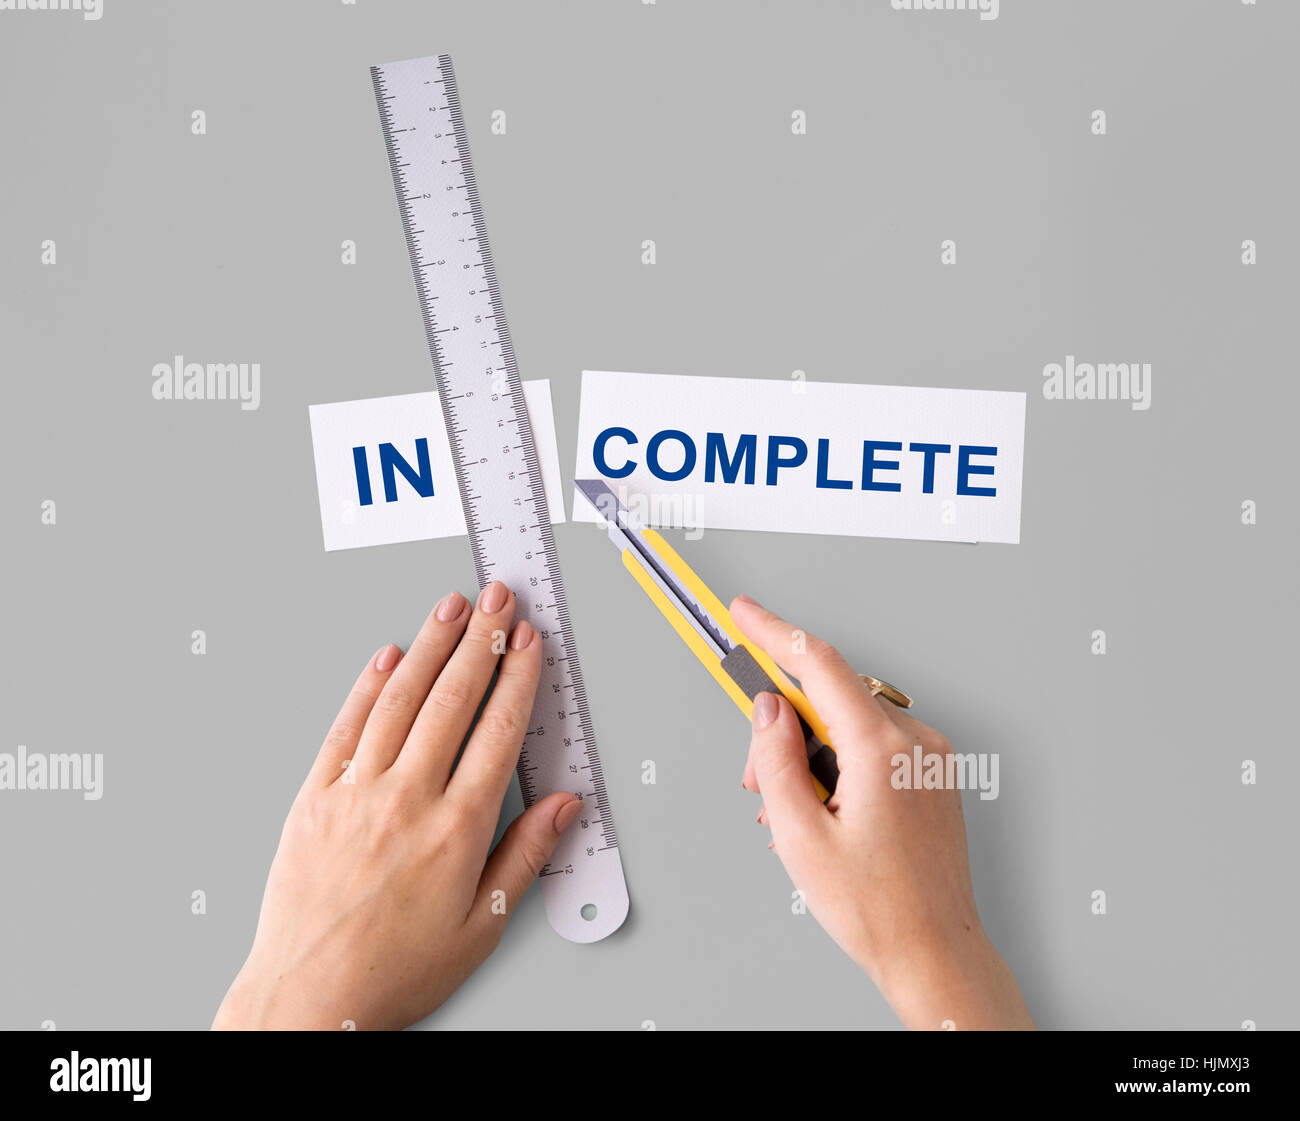 Incomplete Unfinished Word Split Hands Cut Concept - Stock Image